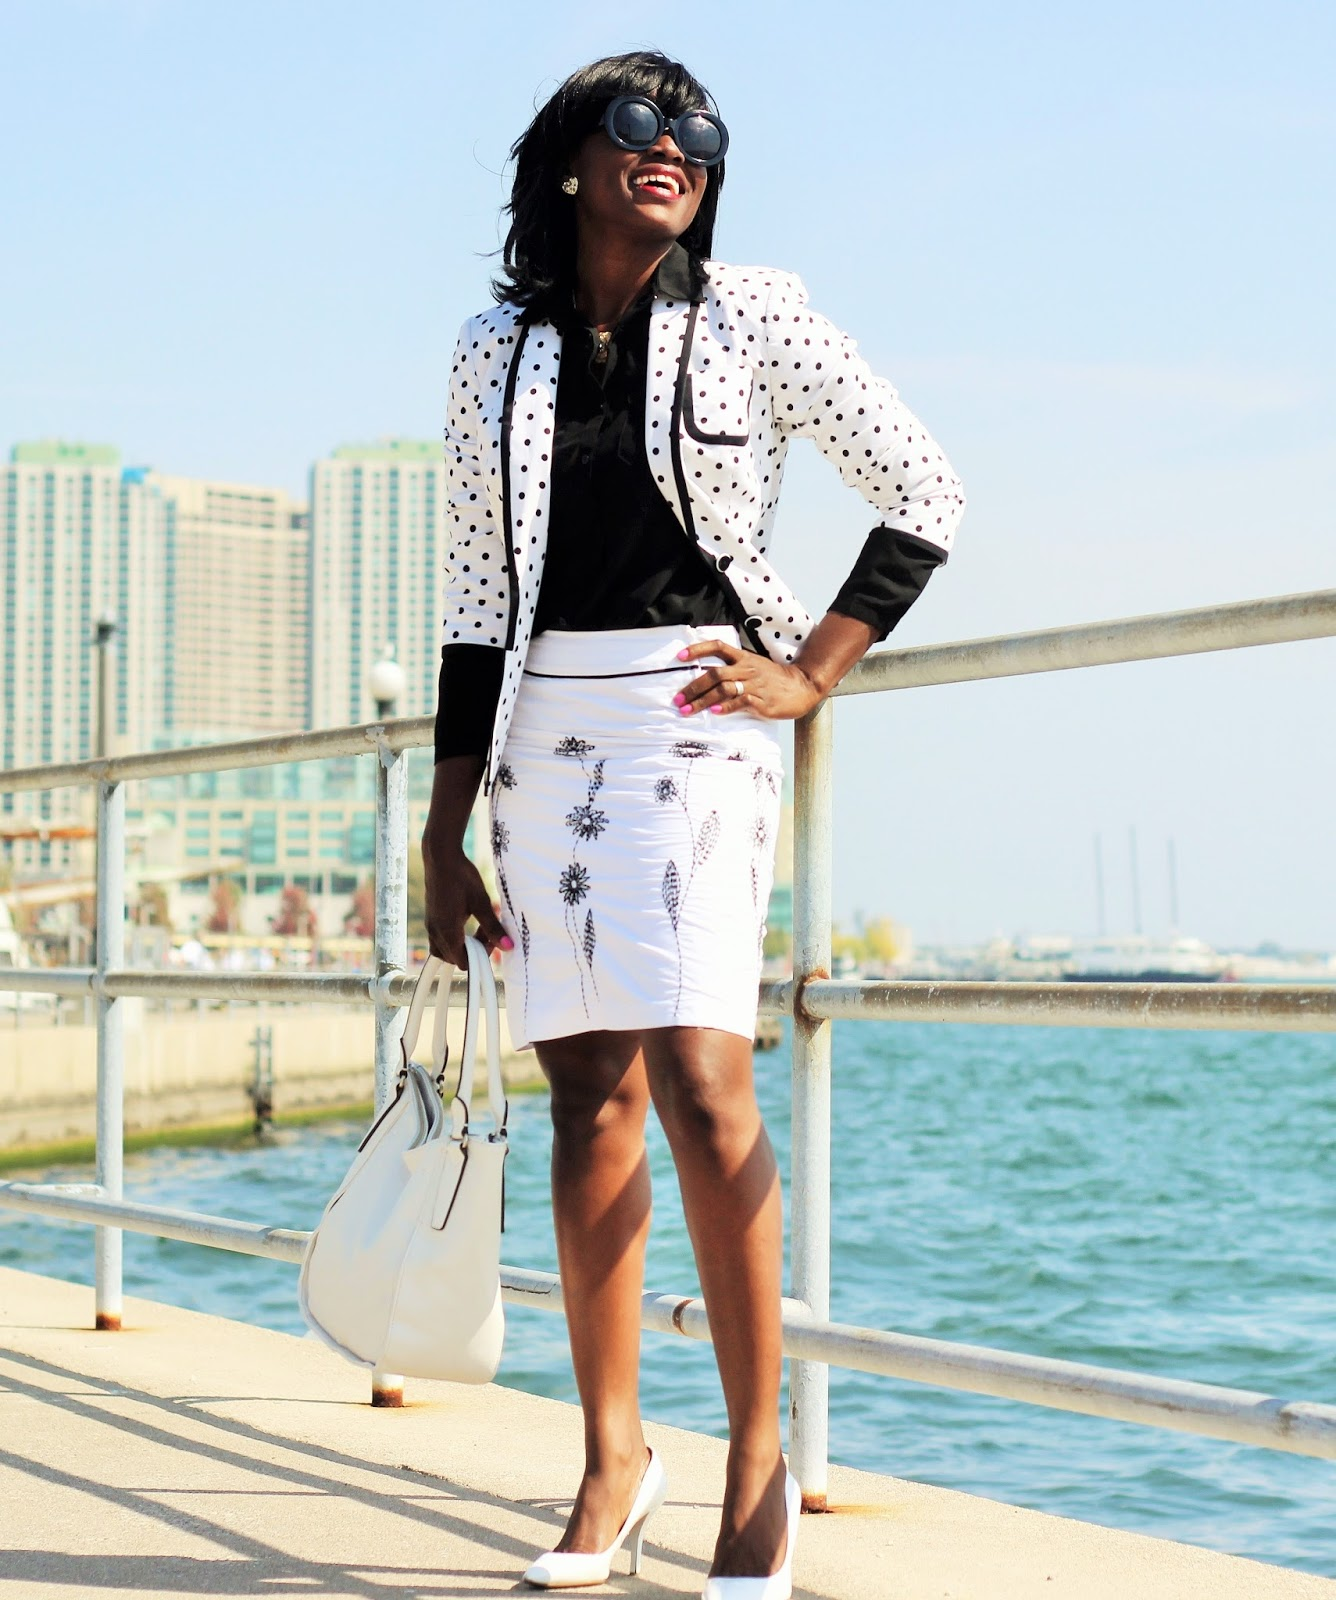 A workday/weekday outfit wearing a polkadot blazer by Express